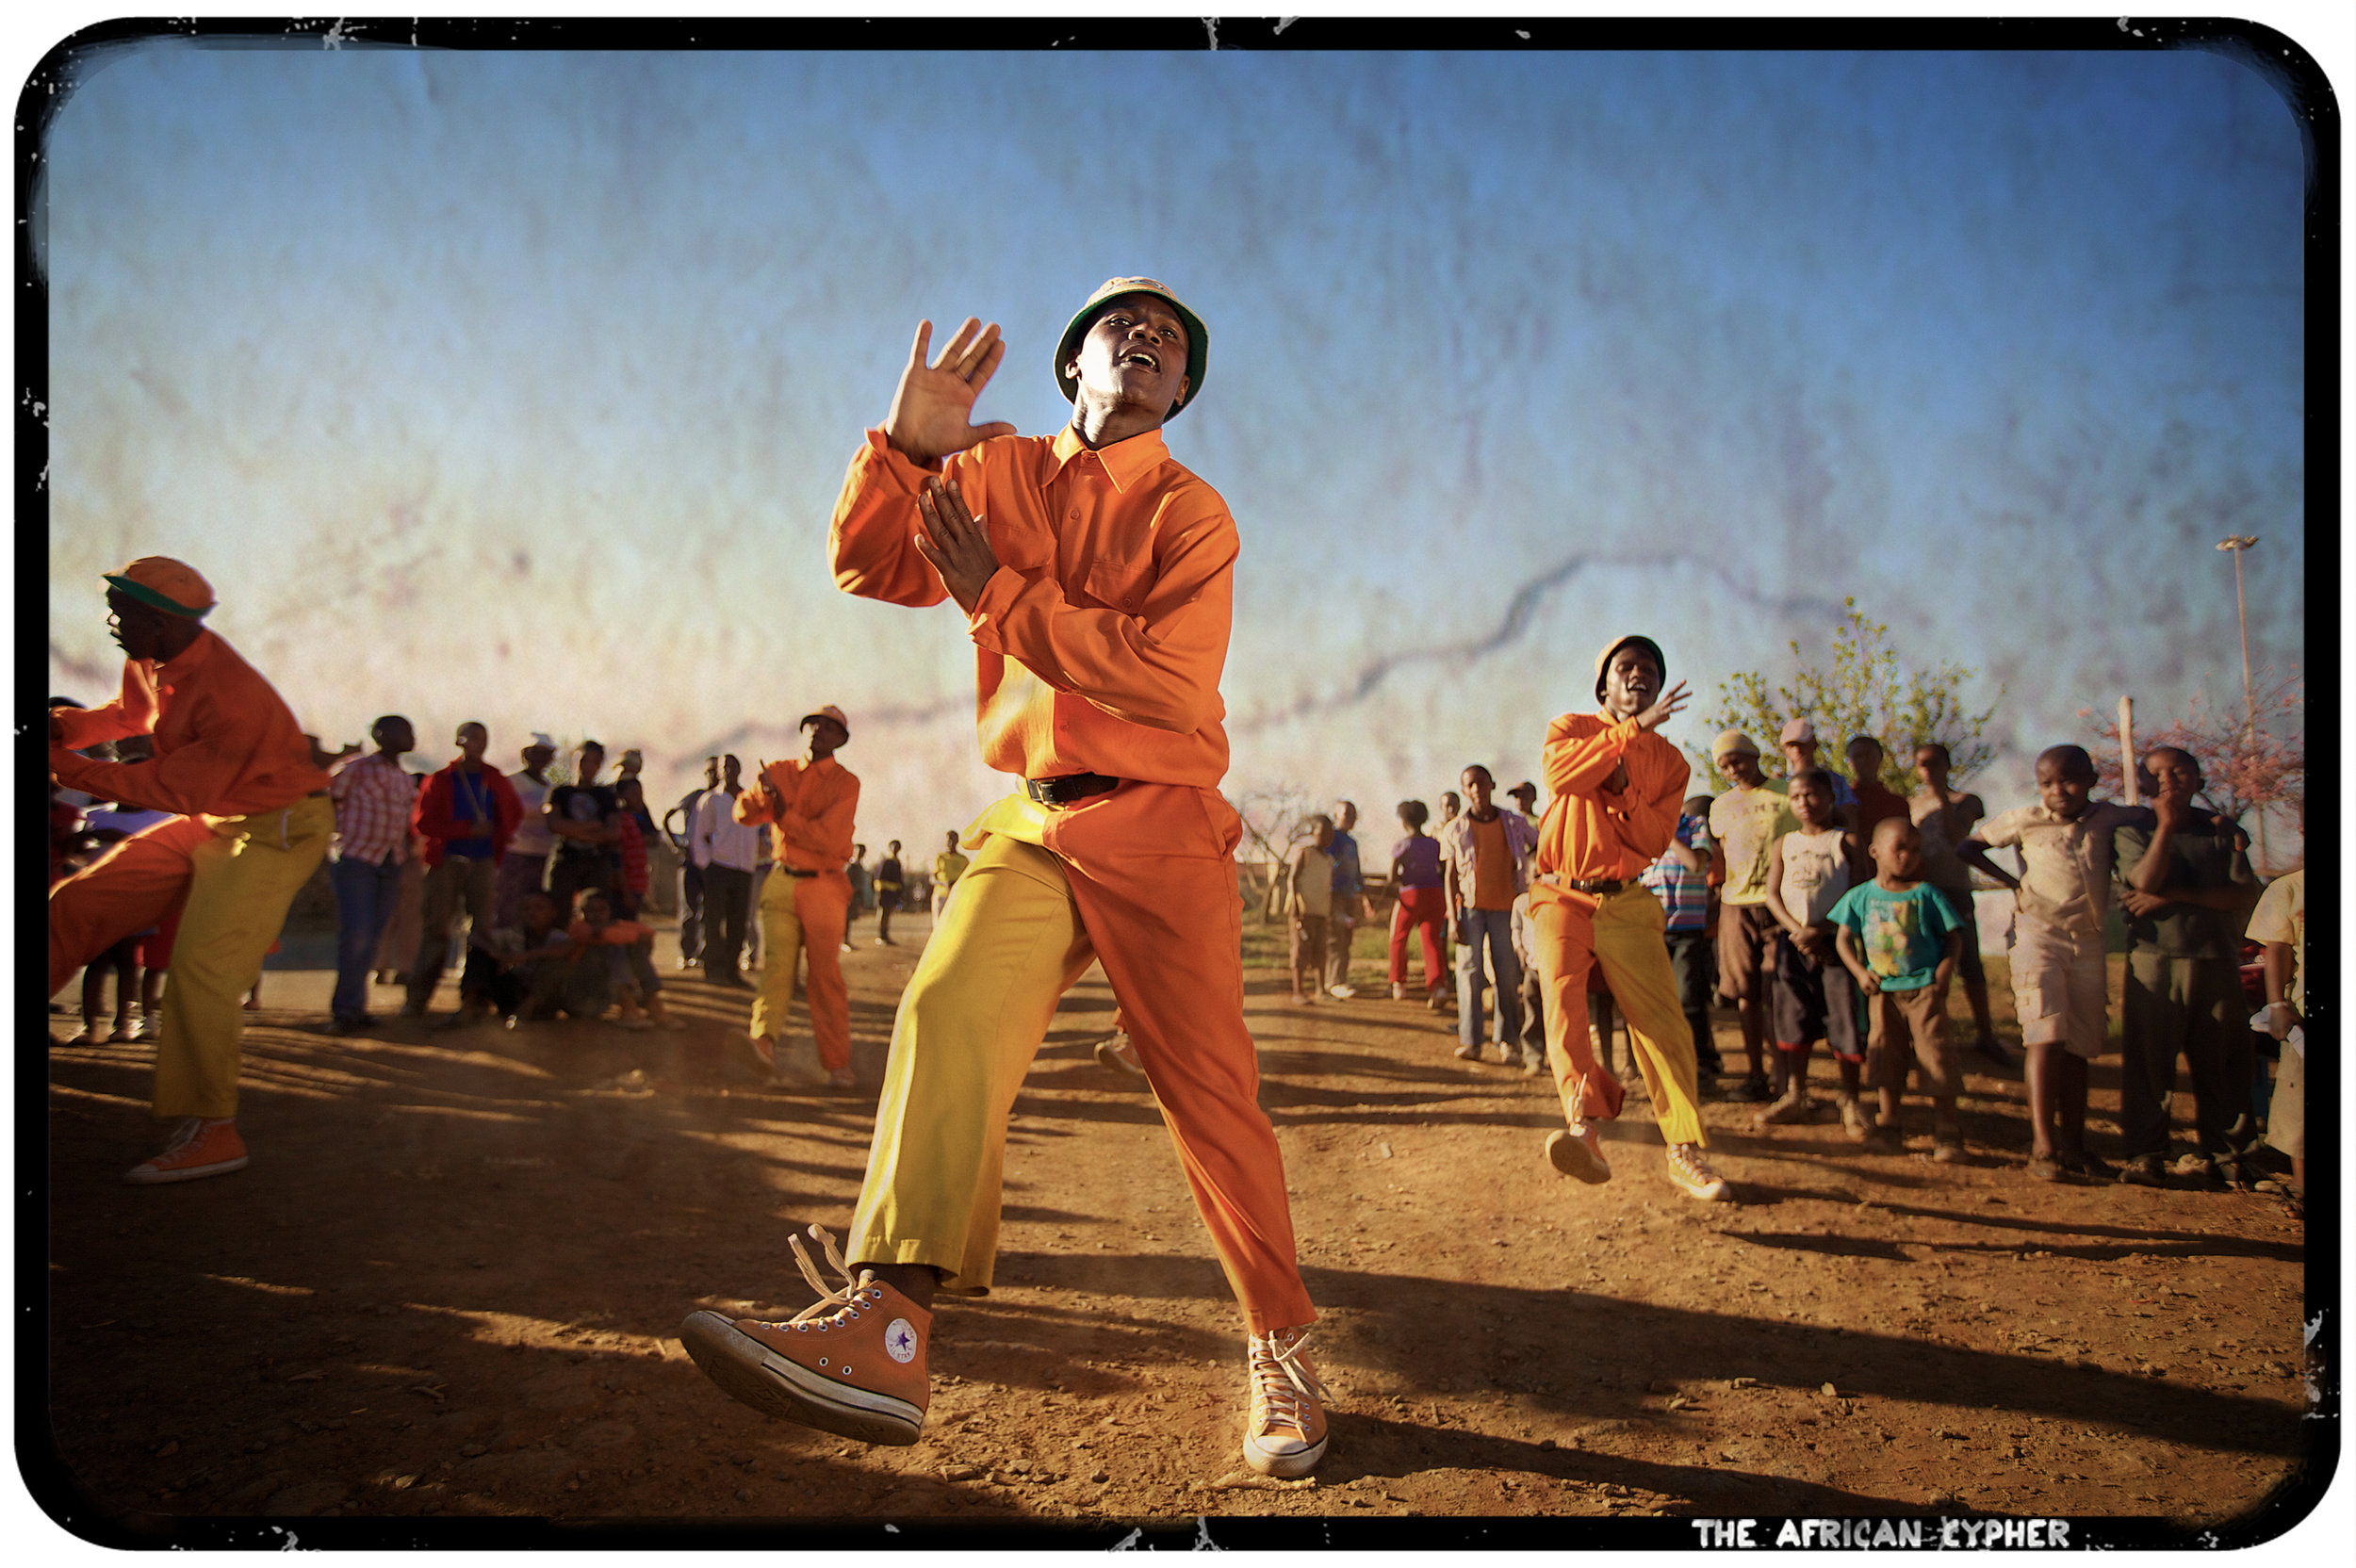 still:  The African Cypher  (Bryan Little, South Africa 2012)